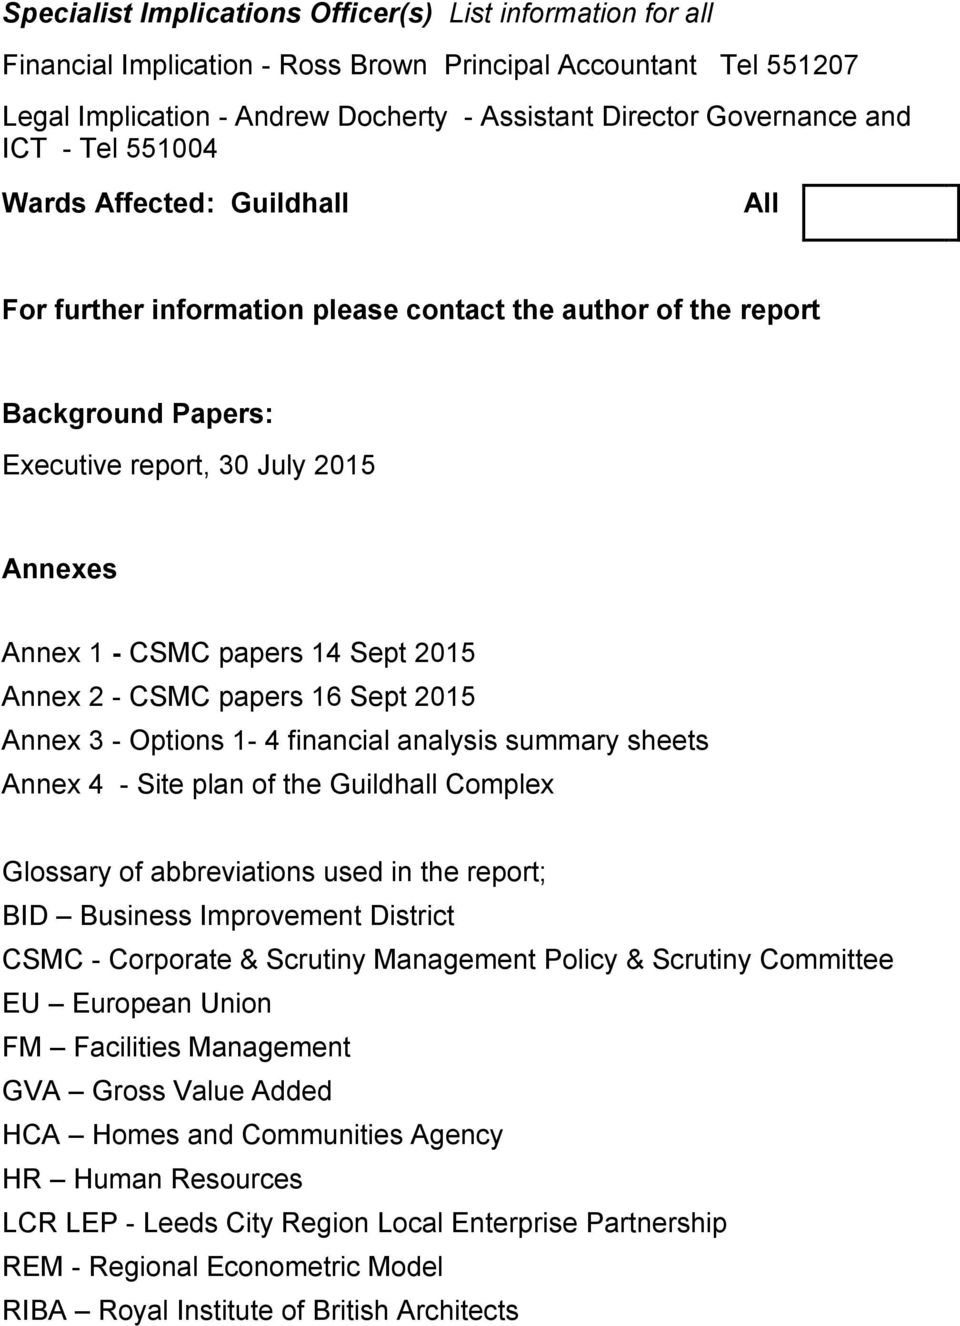 2015 Annex 2 - CSMC papers 16 Sept 2015 Annex 3 - Options 1-4 financial analysis summary sheets Annex 4 - Site plan of the Guildhall Complex Glossary of abbreviations used in the report; BID Business